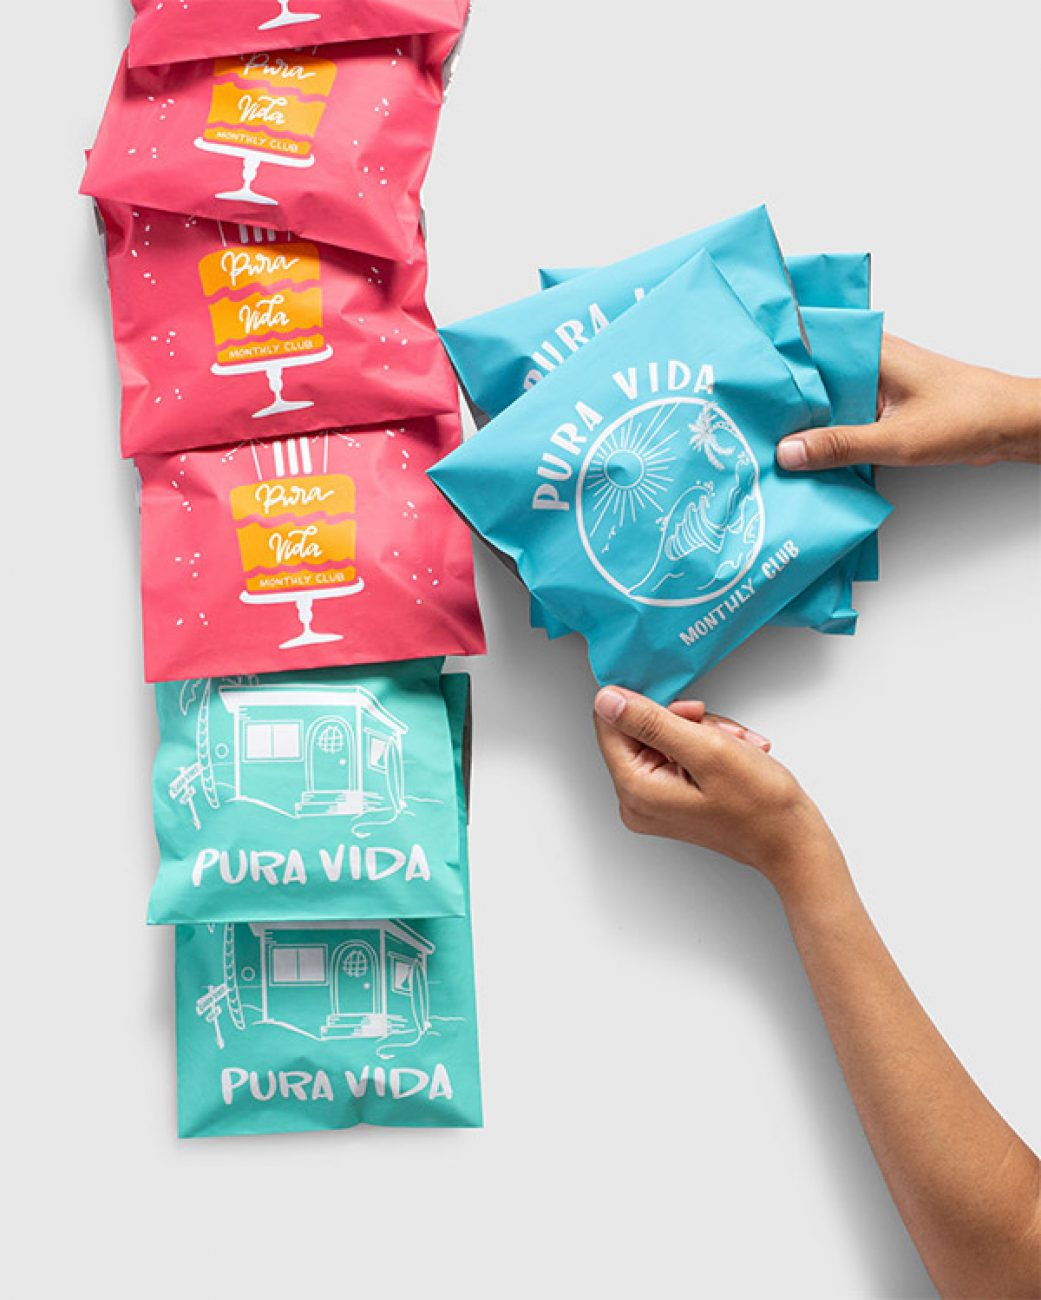 Pura Vida is one of the first Lumi customers to use the new Compostable Poly Mailers Compostable Mailers